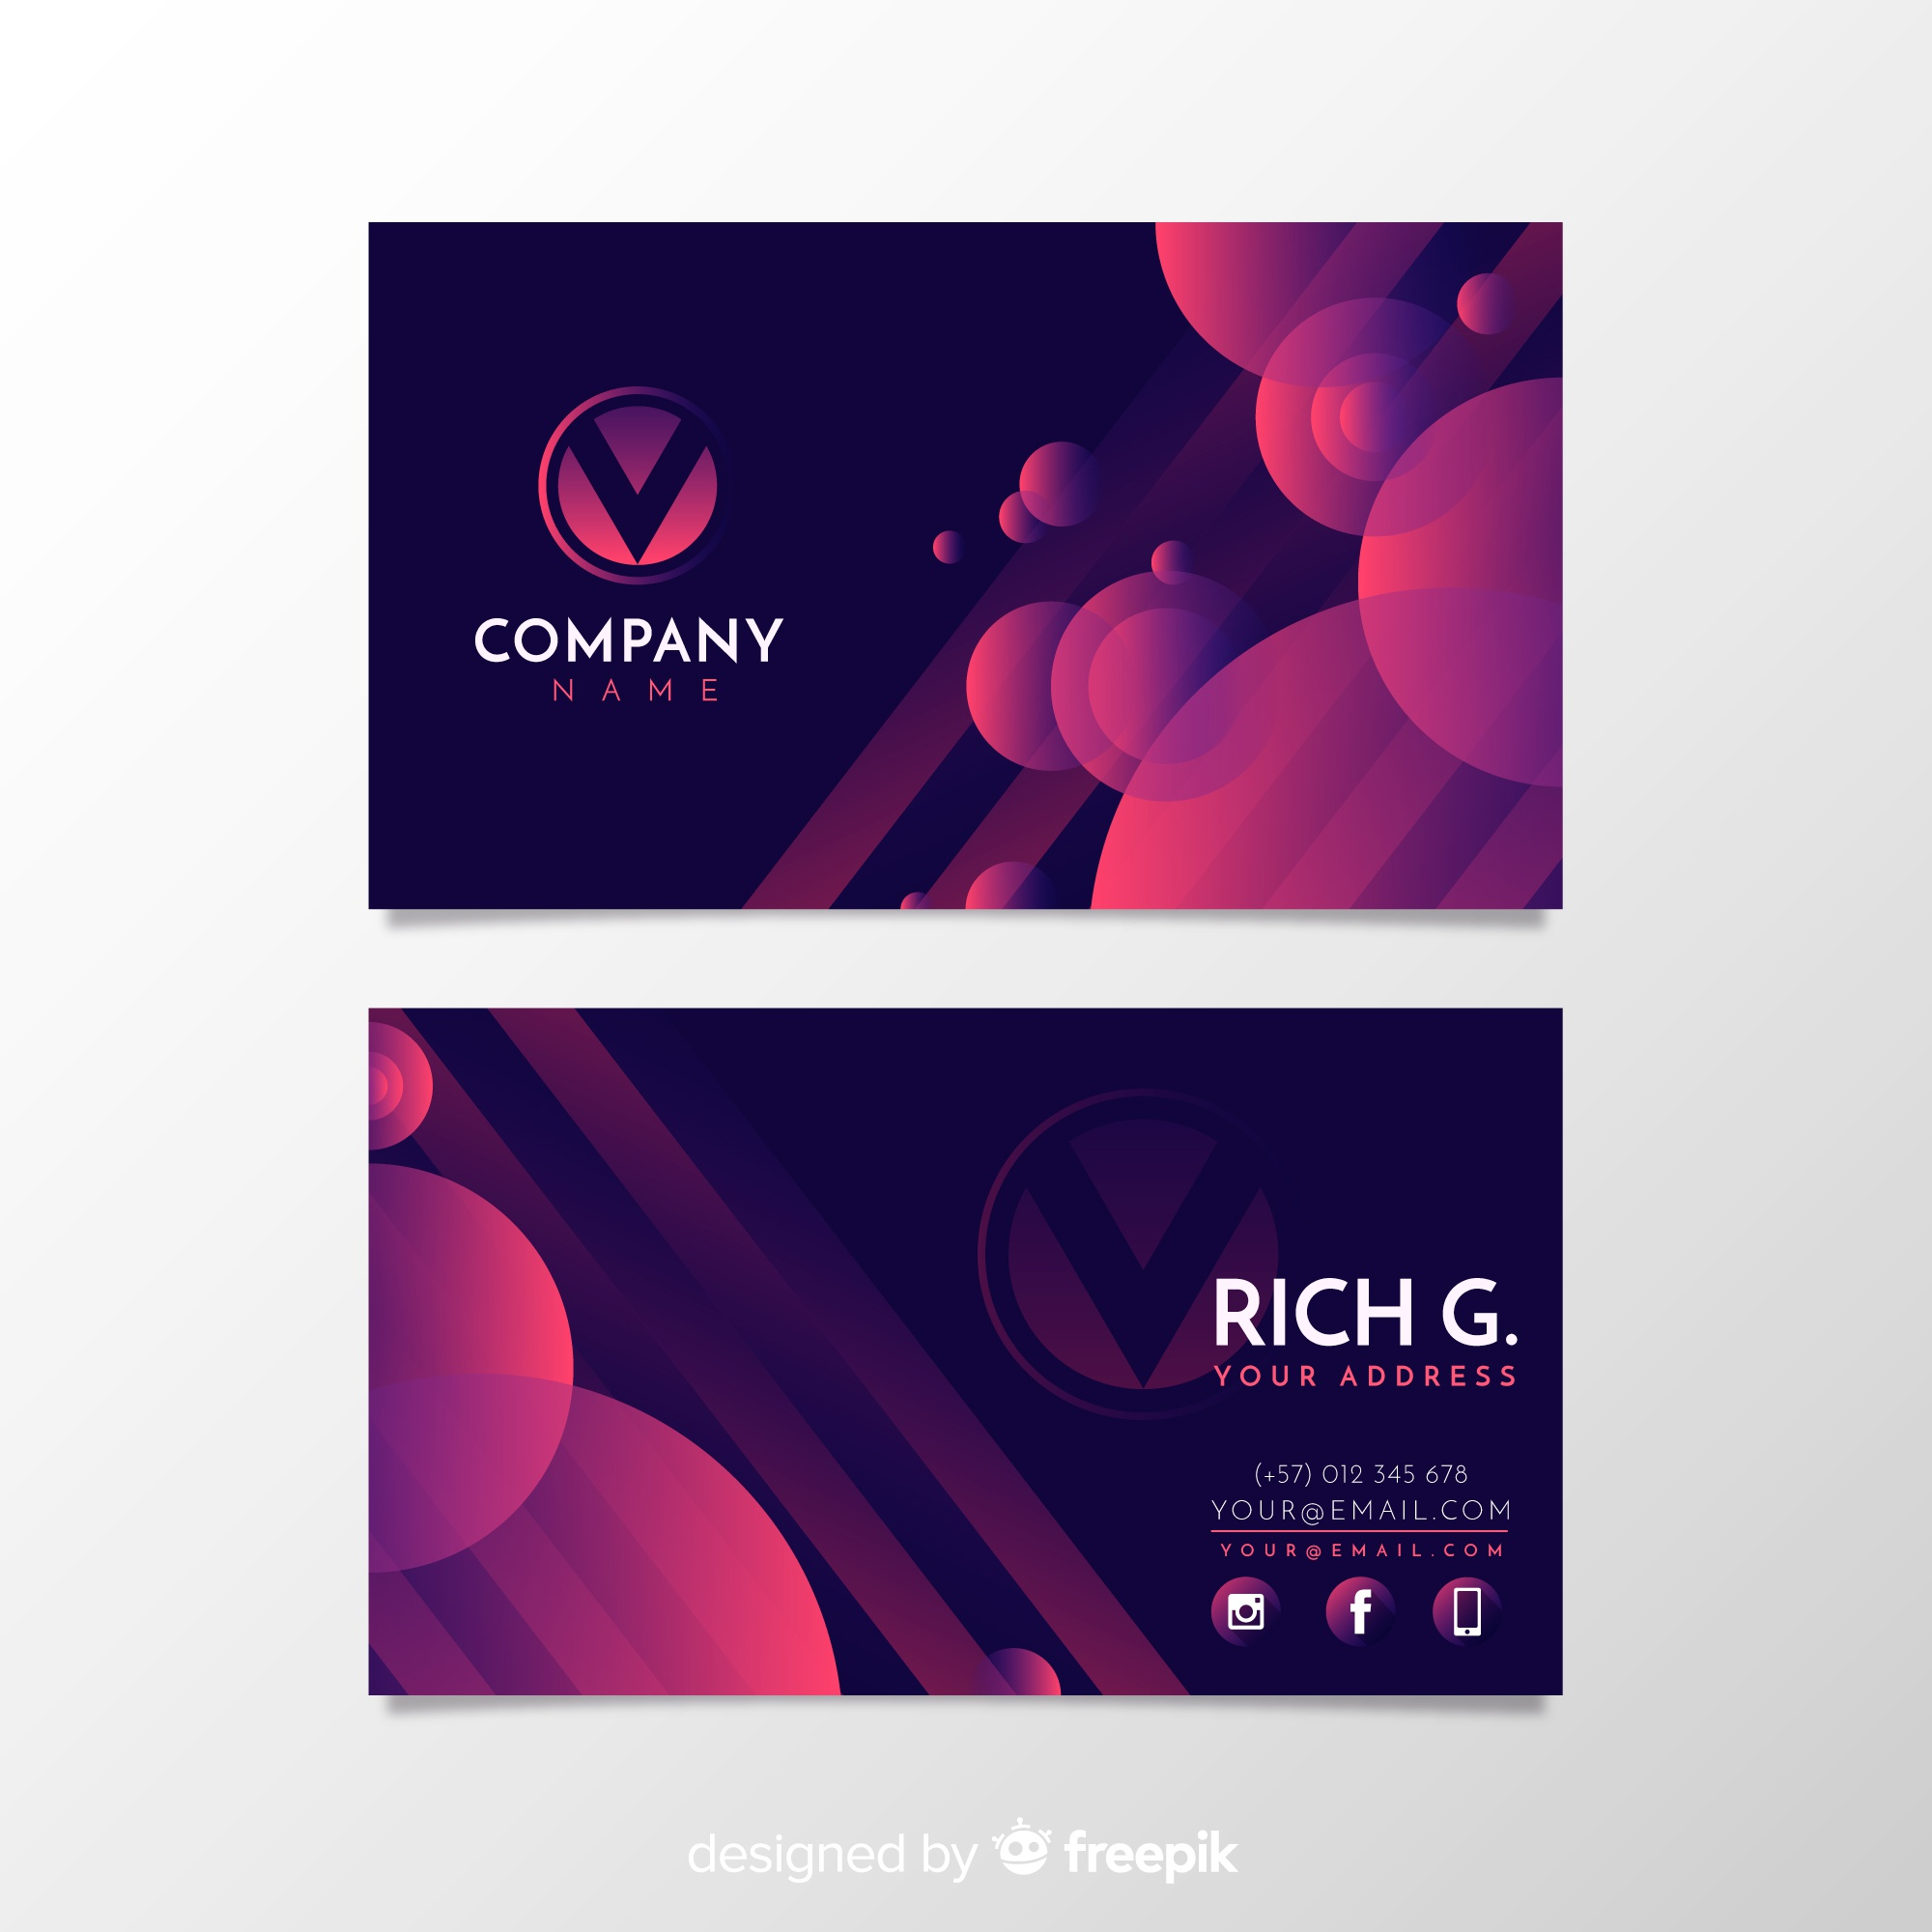 New templates vectors 230400 files in eps format modern business card template with circles friedricerecipe Choice Image